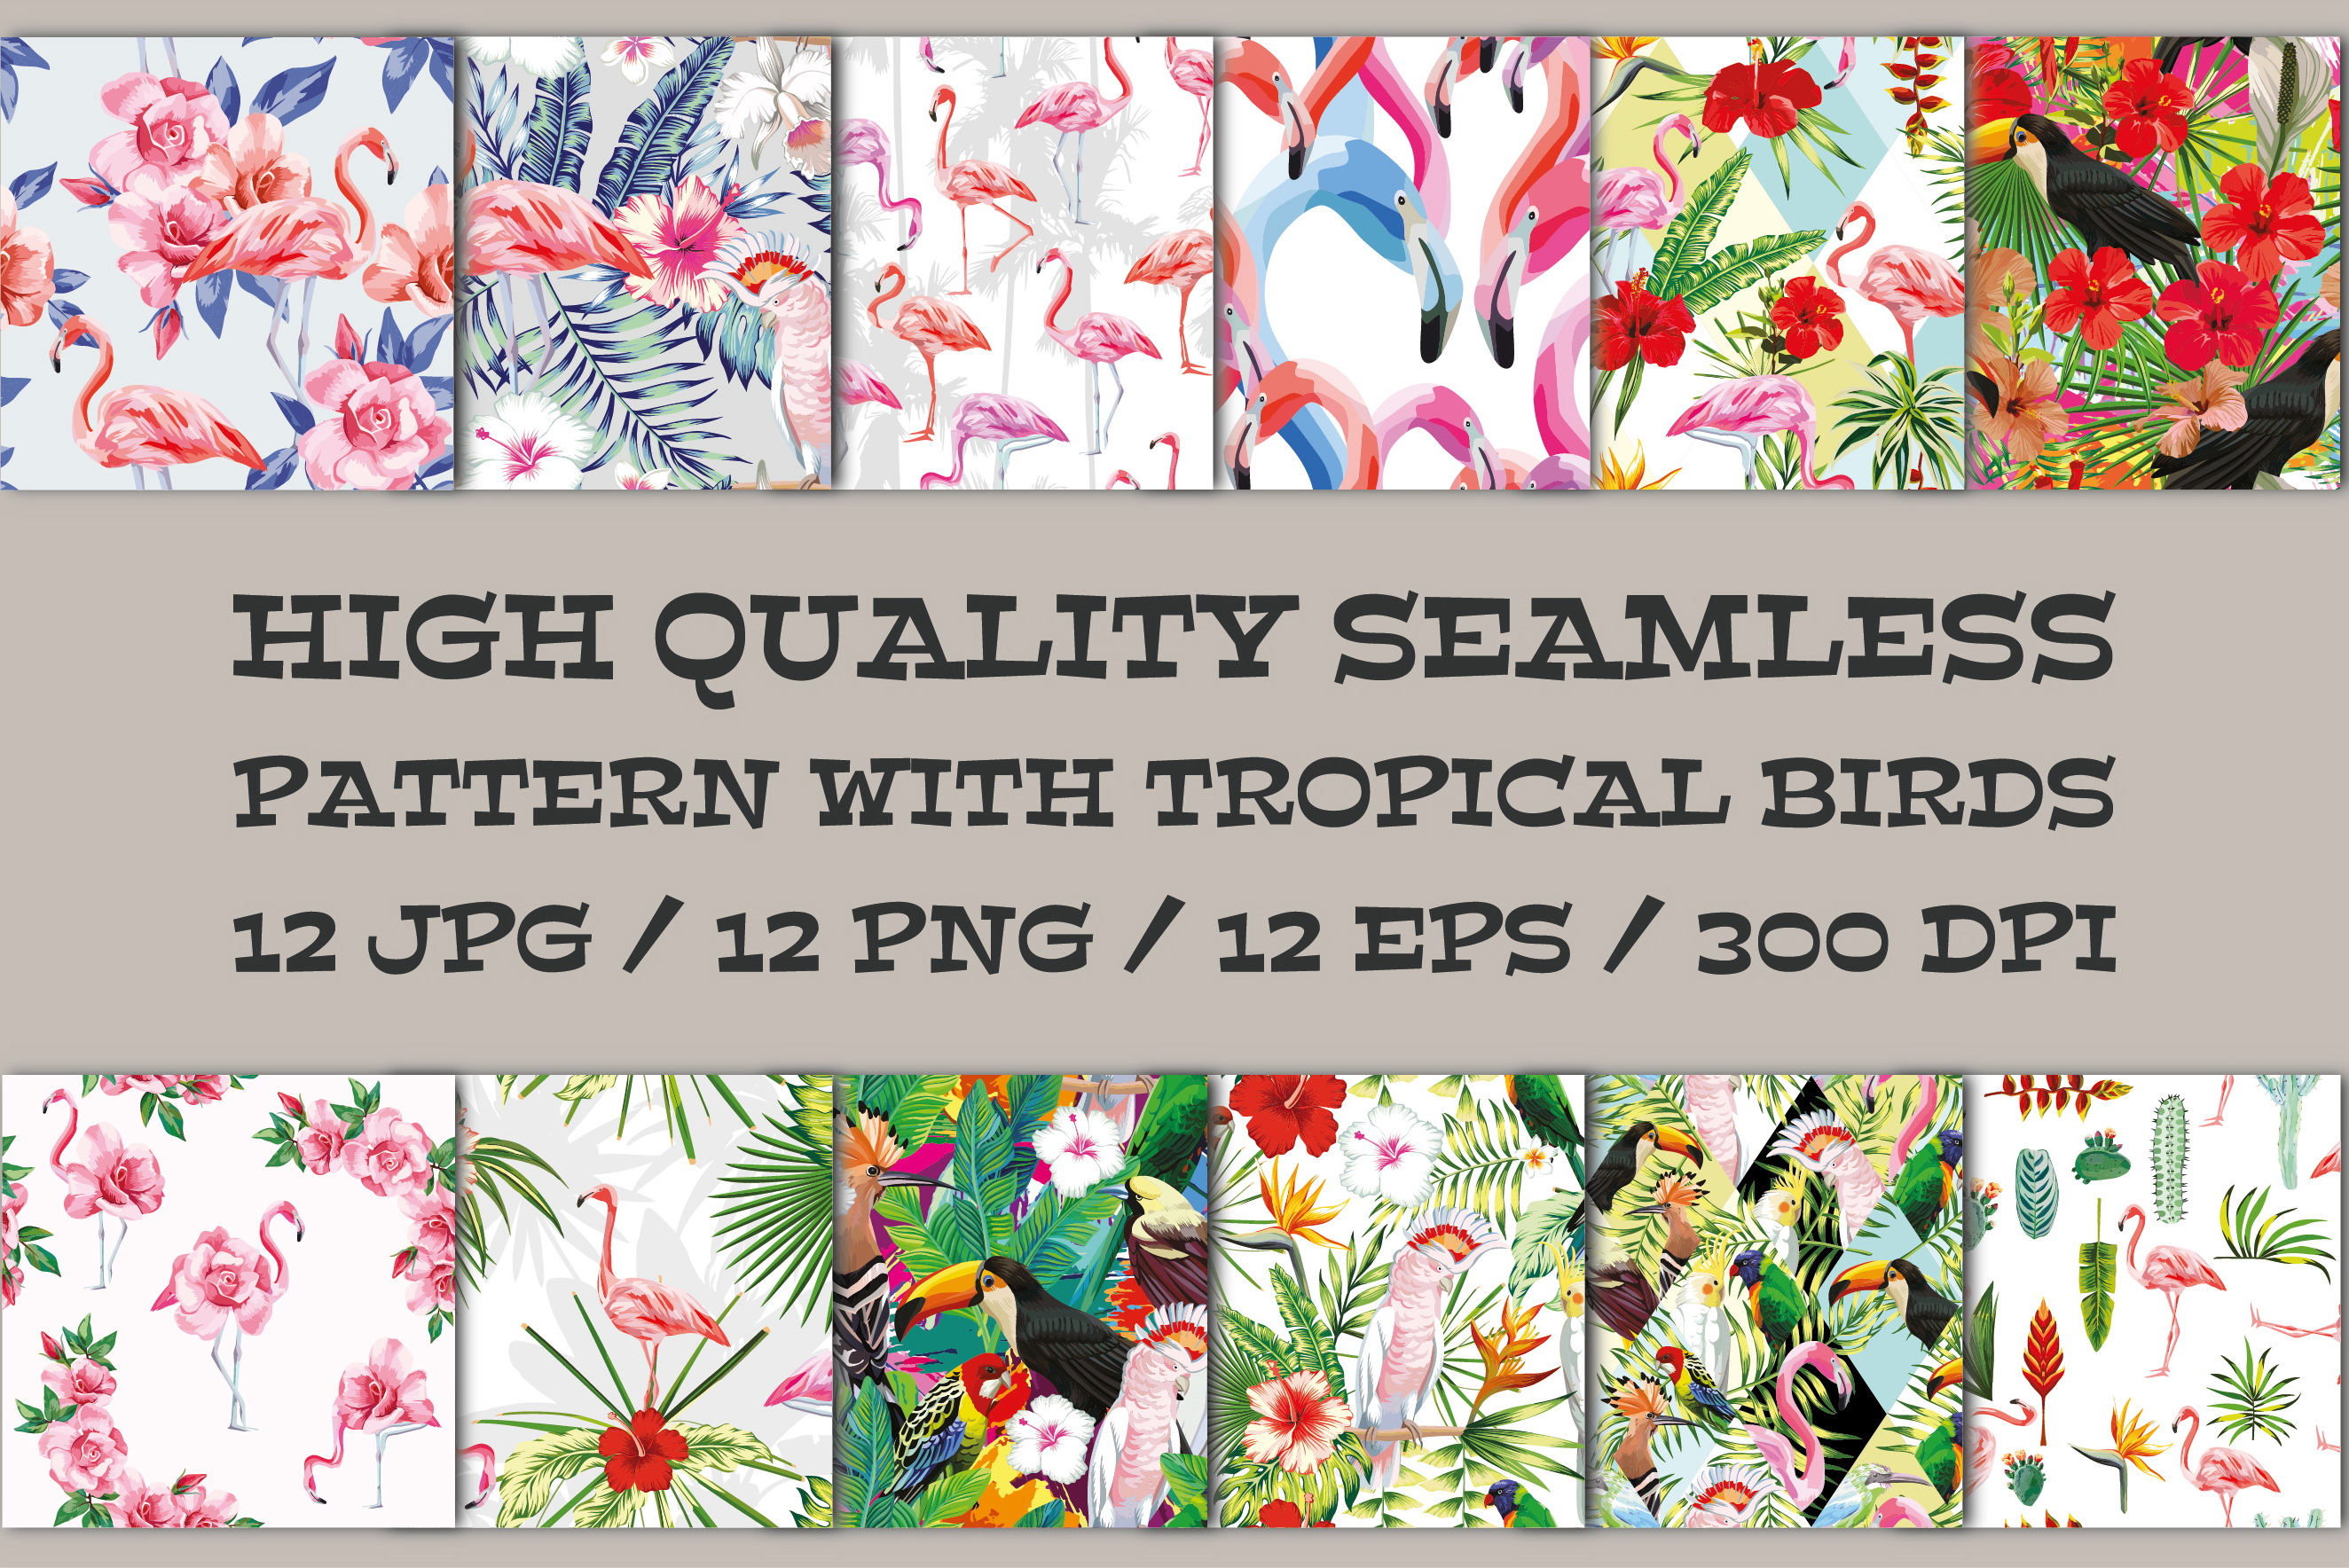 Seamless vector pattern with tropical birds, flowers, leaves example image 1